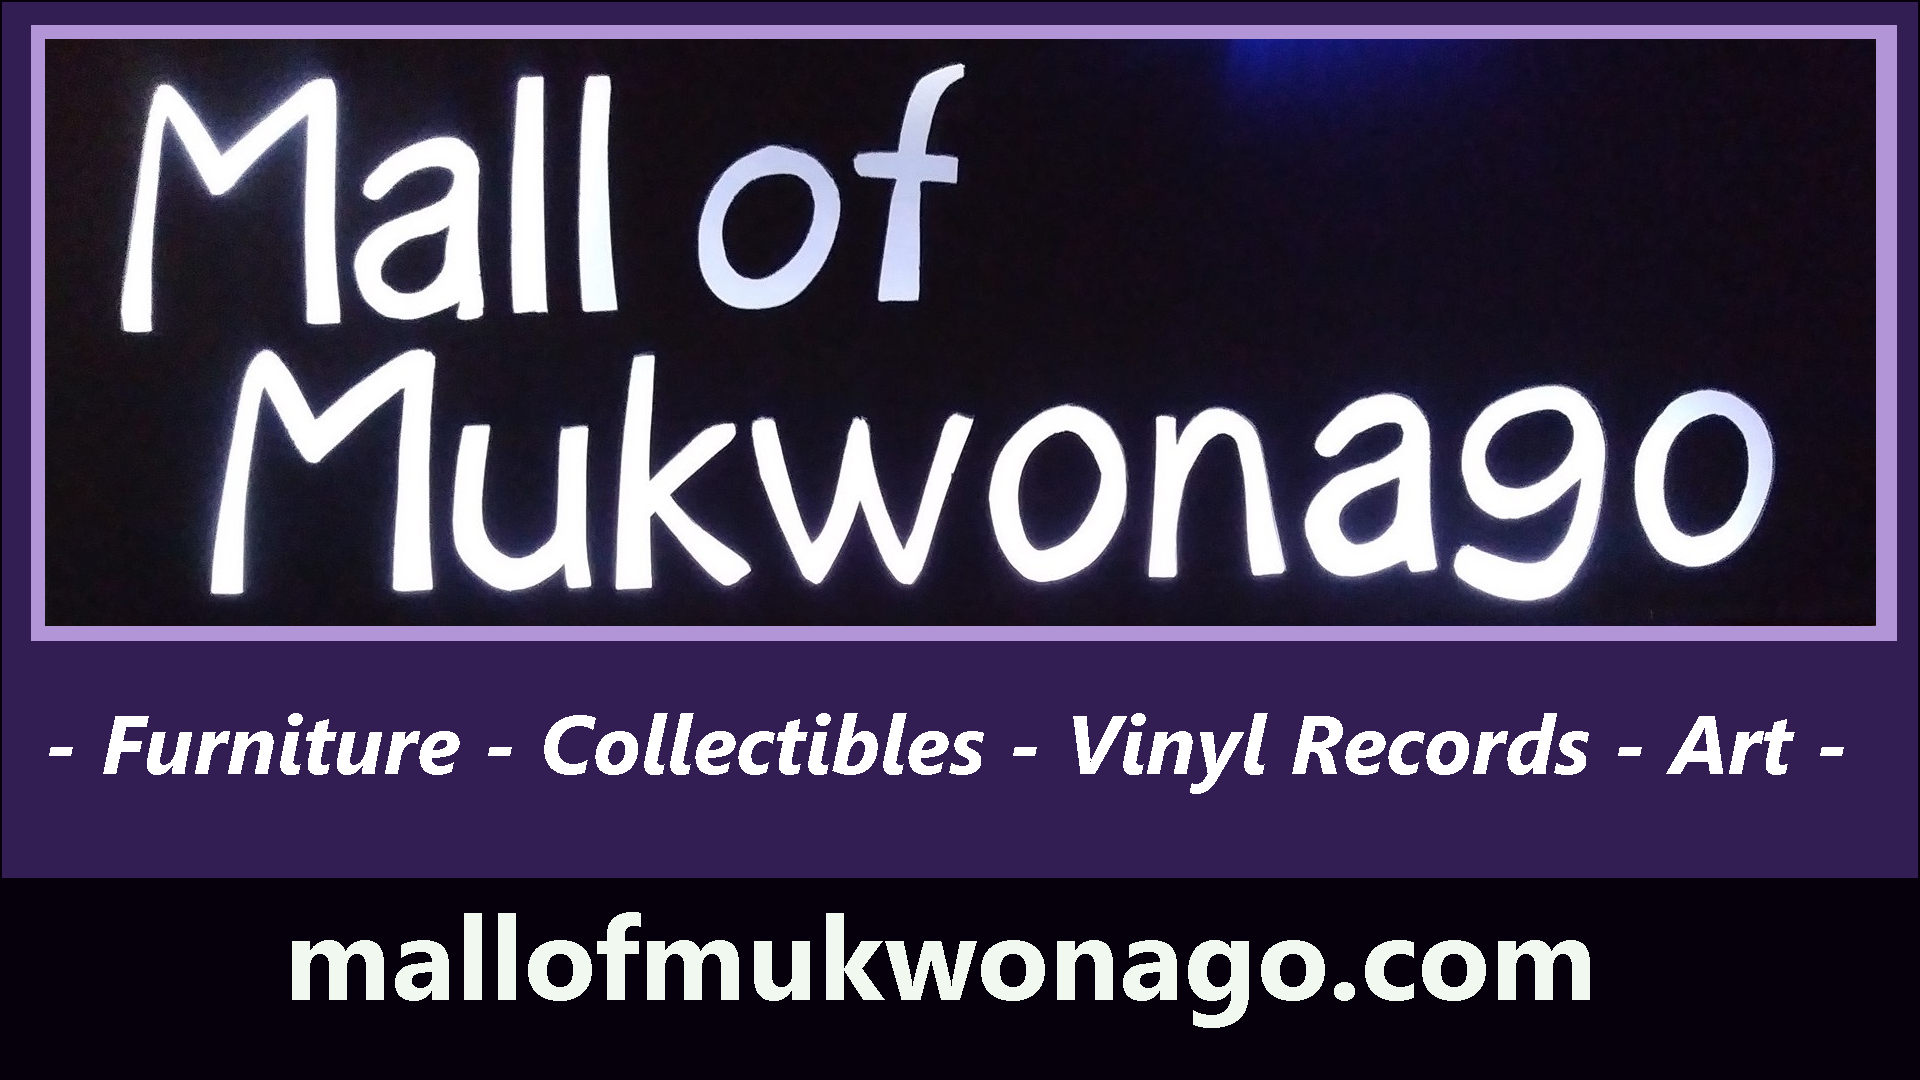 Profile picture for user Mall of Mukwonago